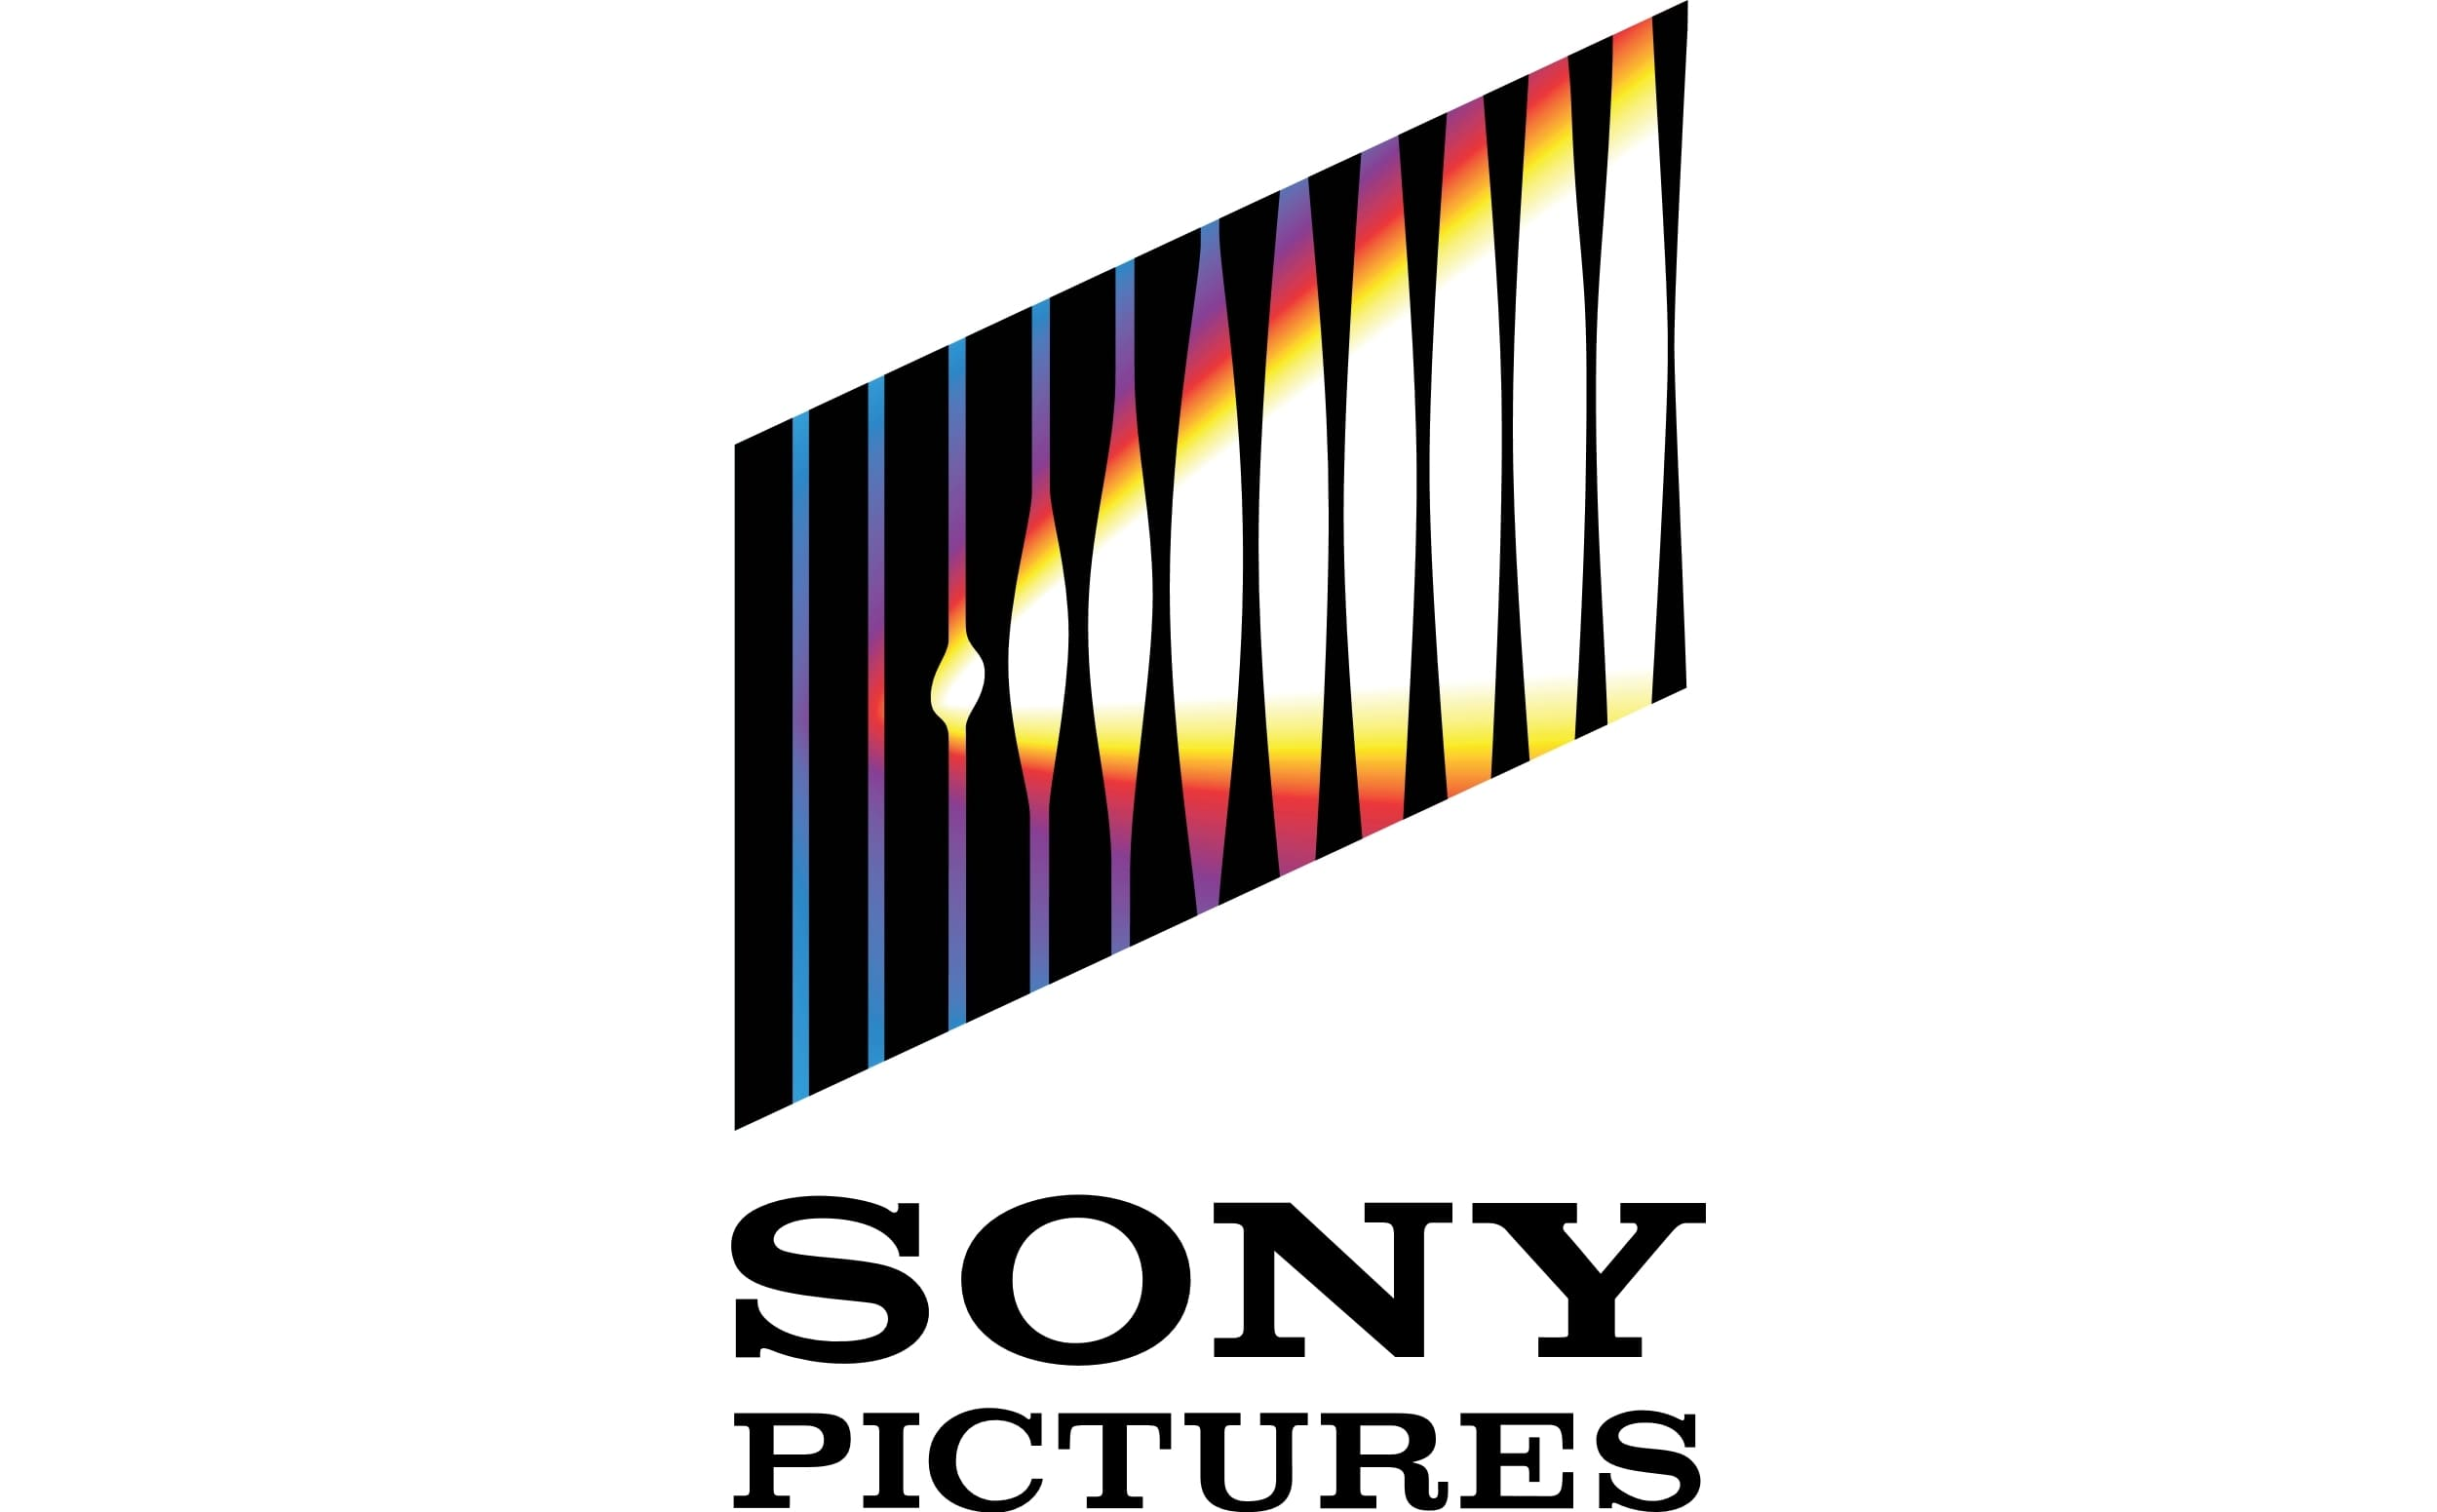 Sony Pictures logo and symbol, meaning, history, PNG